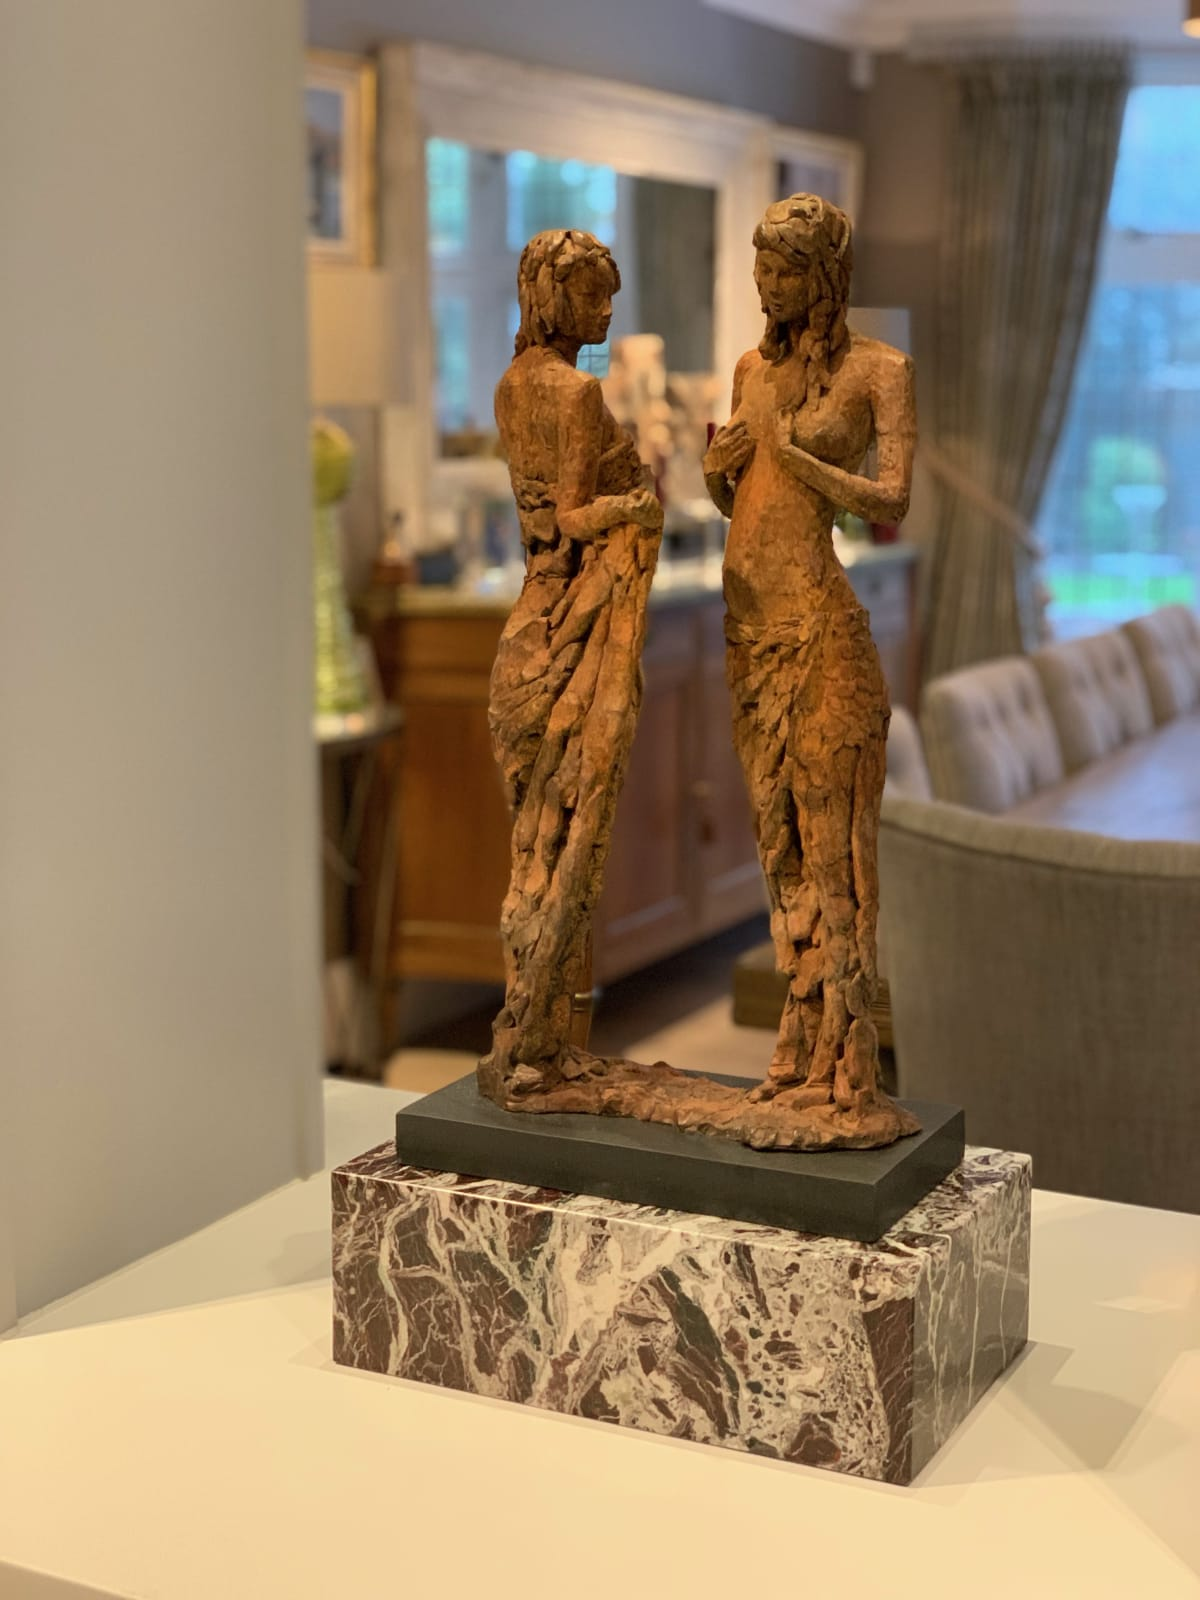 A beautiful sculpture by David Williams-Ellis, with an aged patina and bespoke marble plinth designed and commissioned by Floren